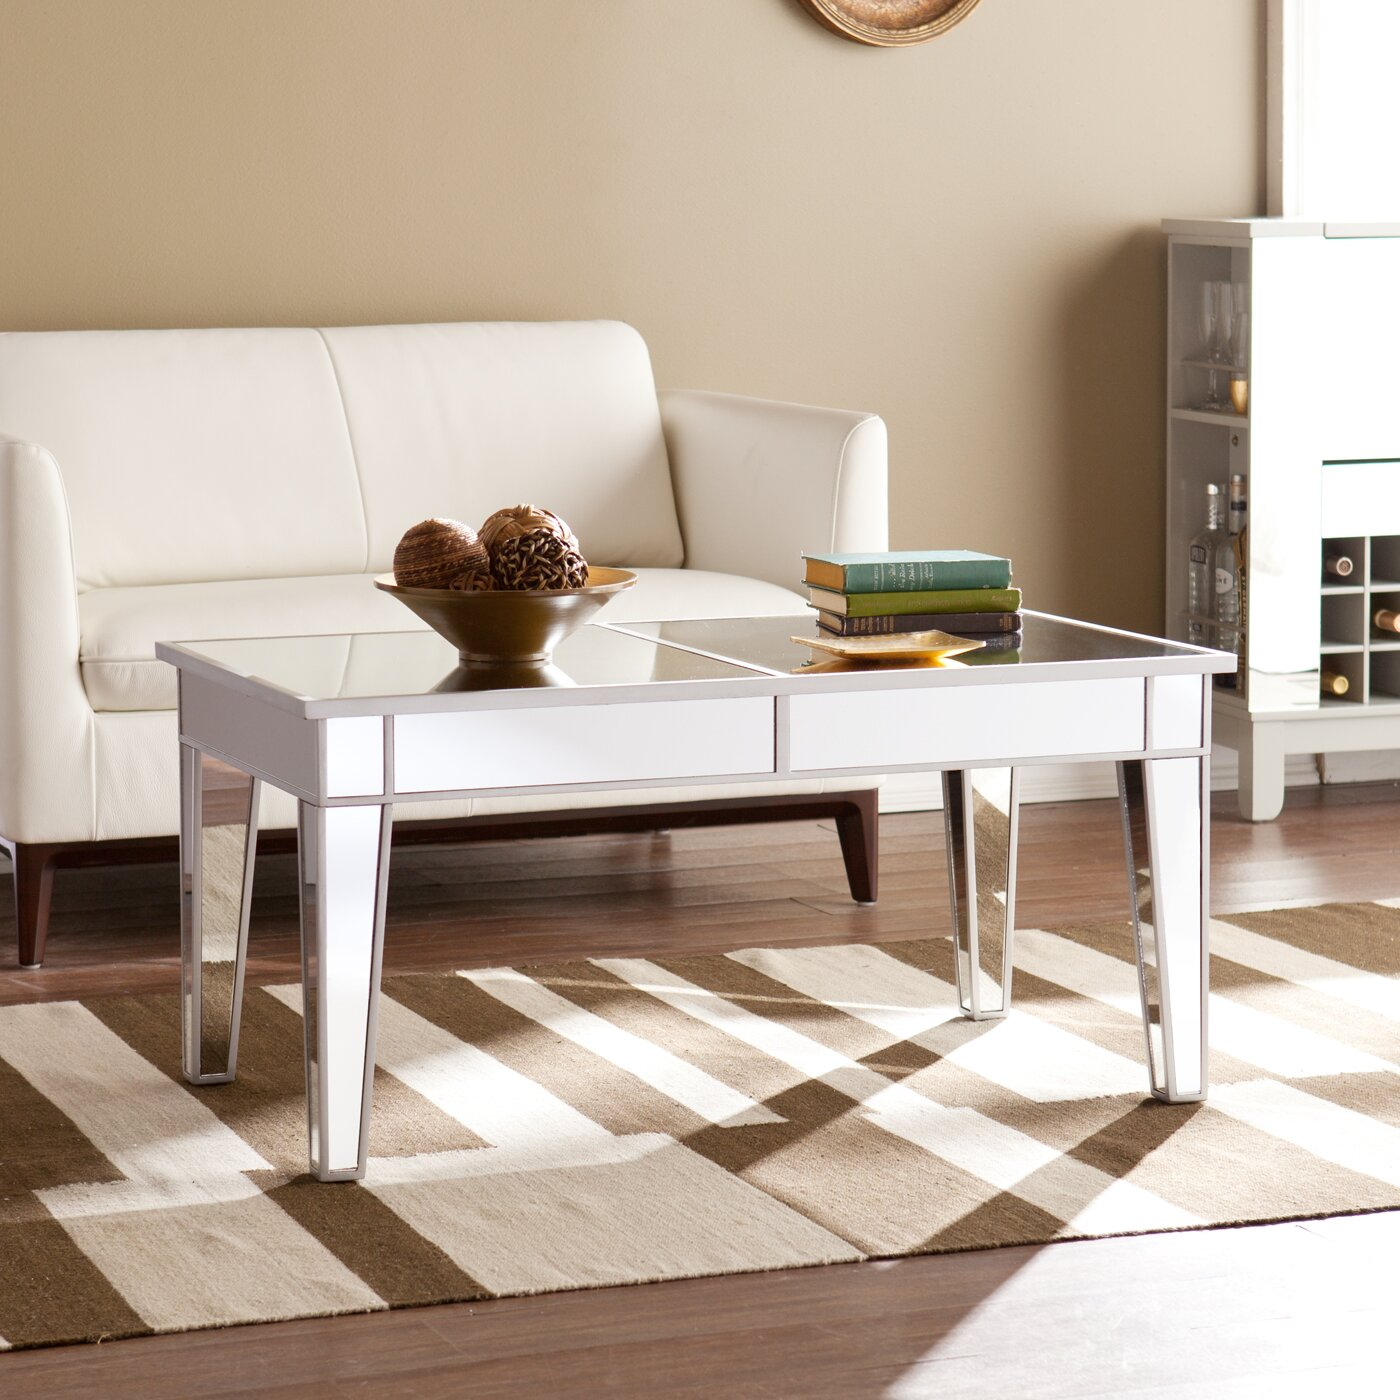 Ghent Mirrored Coffee Table - House Of Hampton Ghent Mirrored Coffee Table & Reviews Wayfair